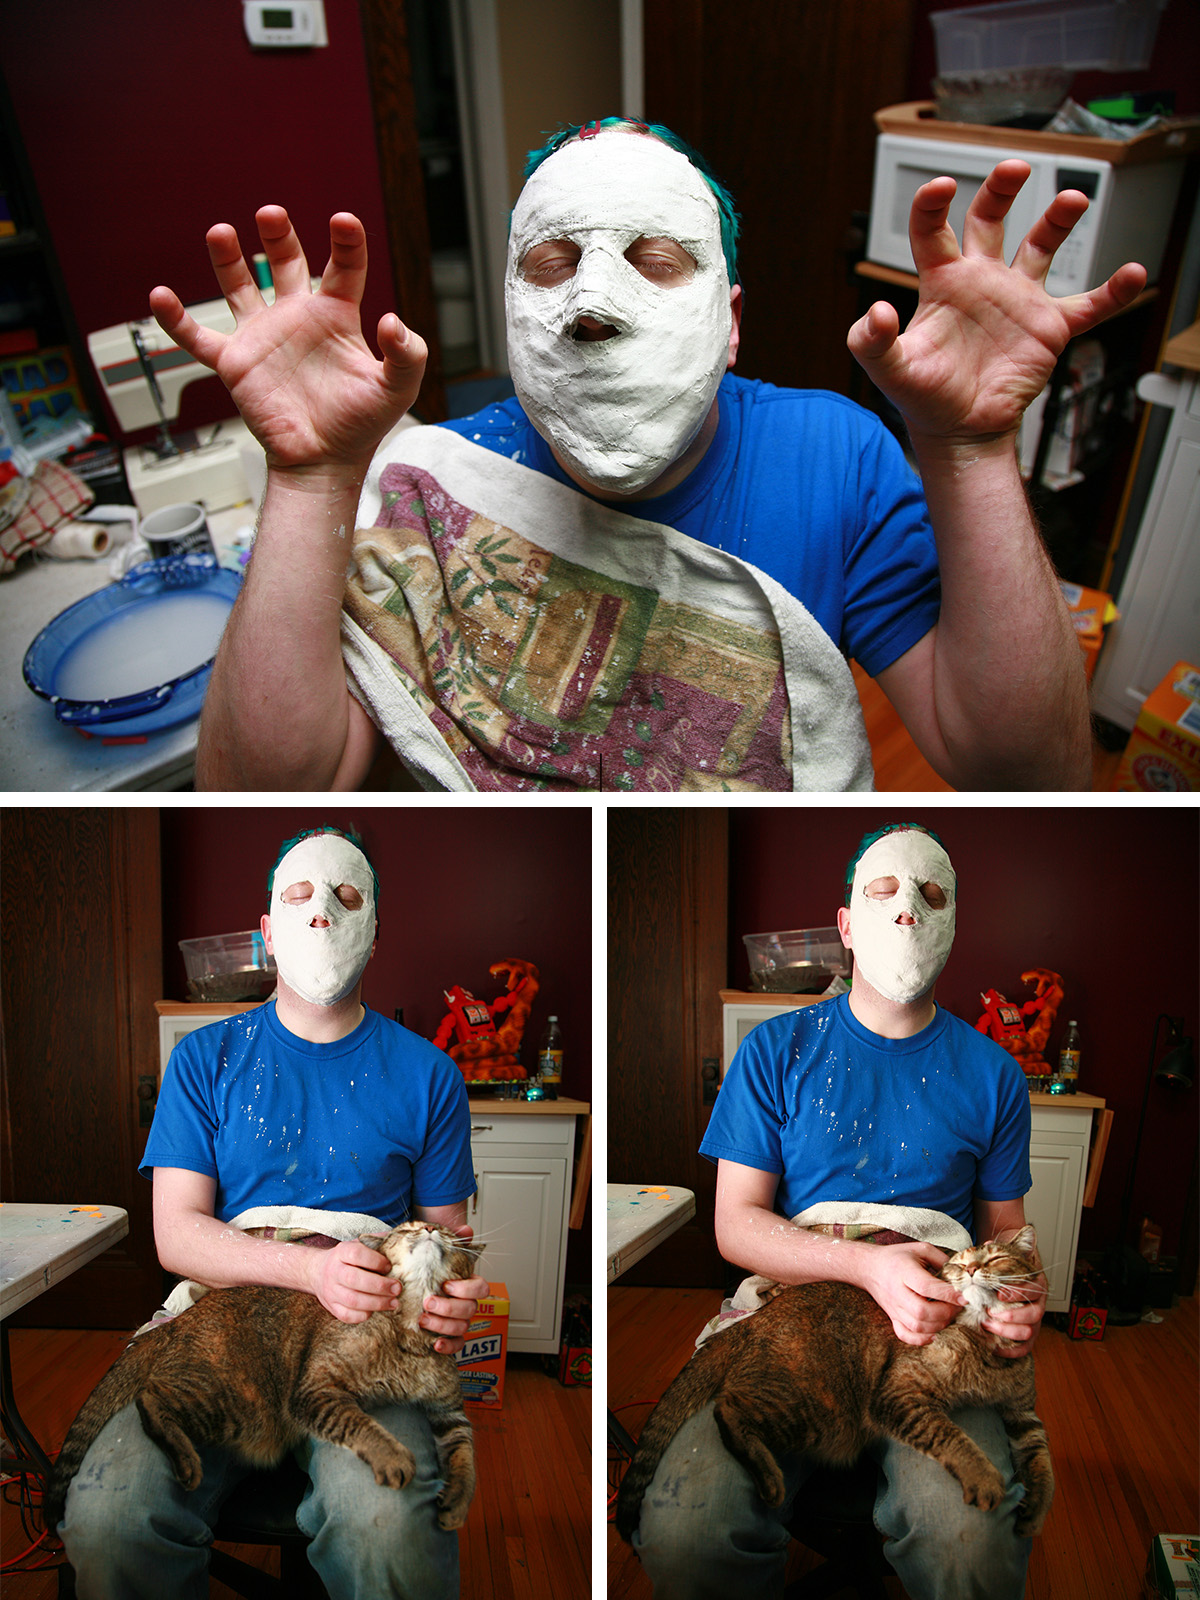 A 3 part image of a man with plaster all over his face, holding a tabby cat in his lap.